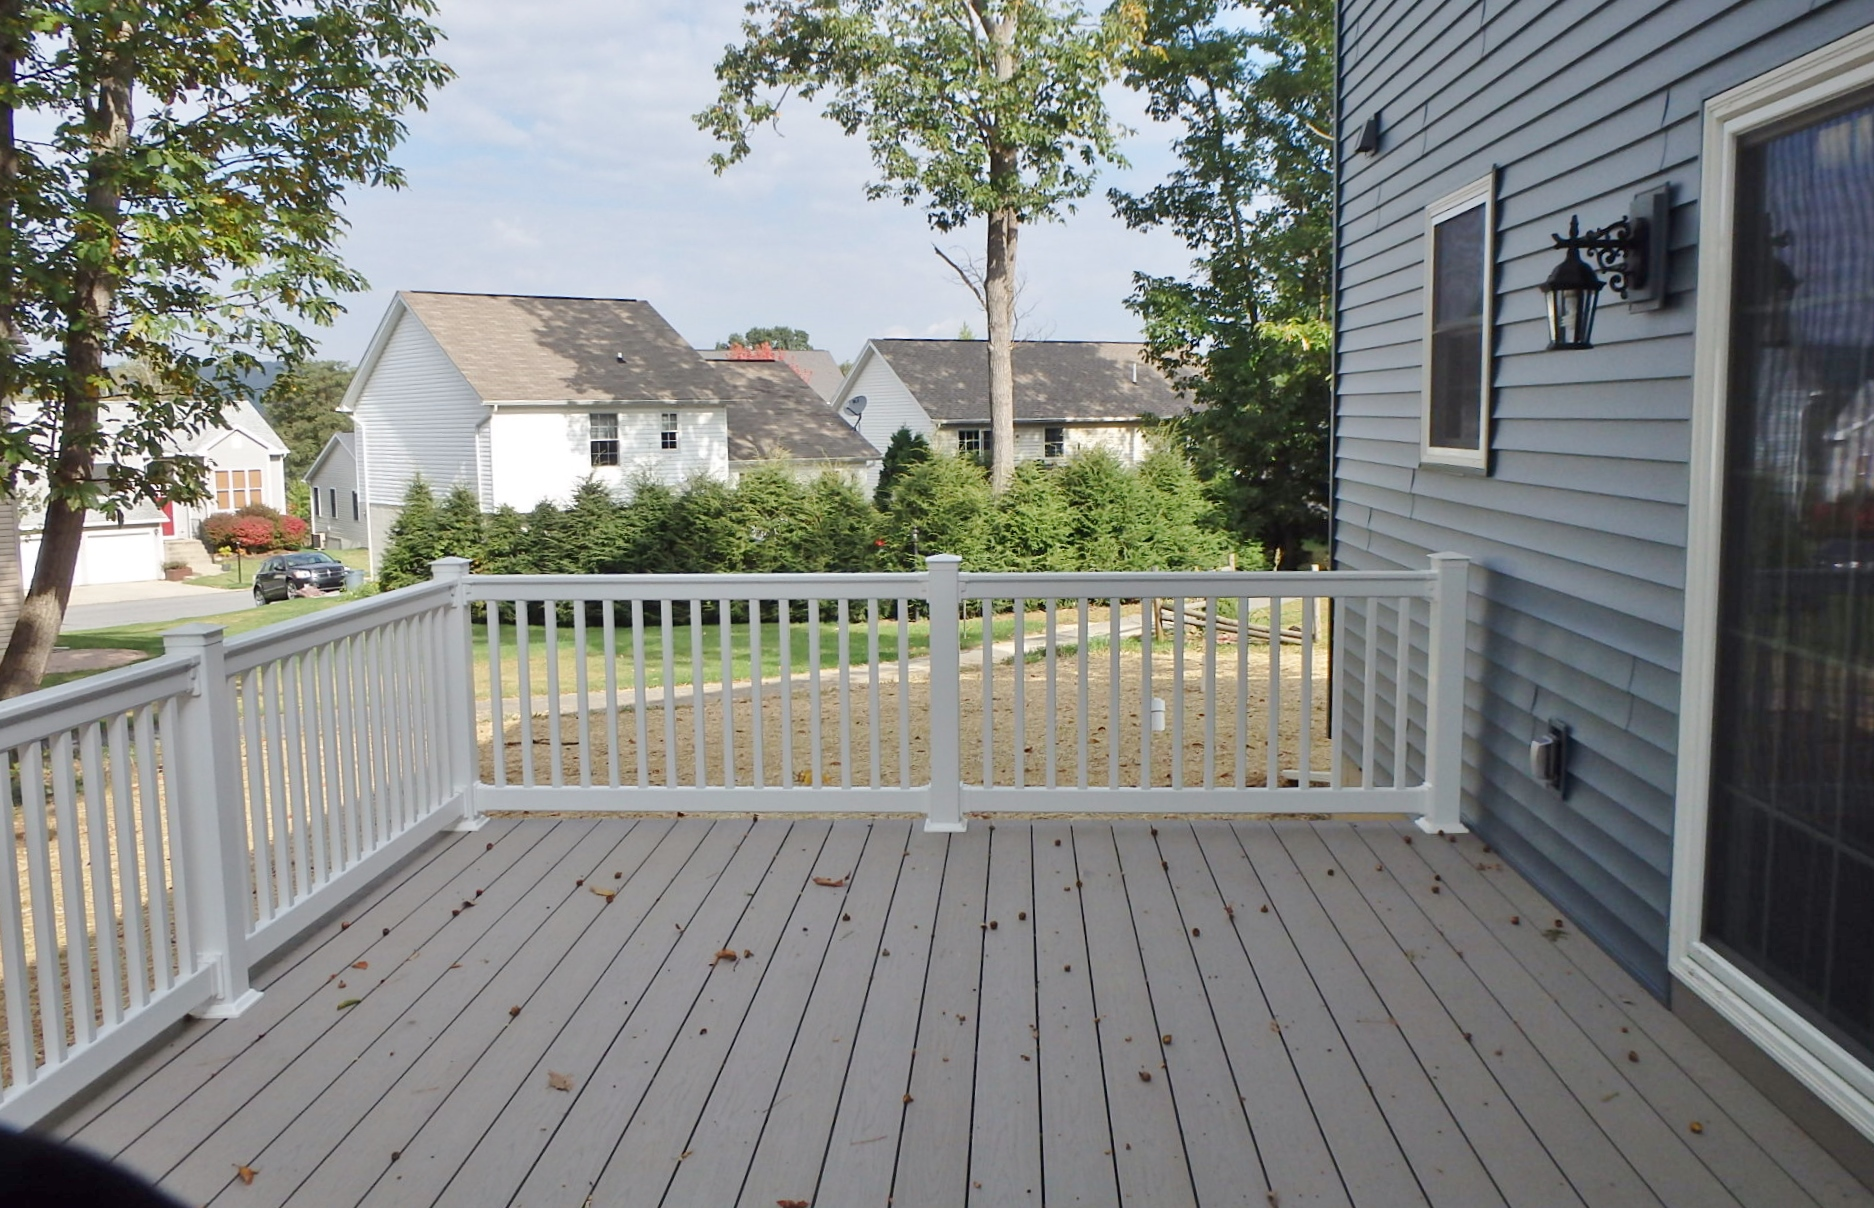 Deck photo at 164 McKivision Court in State College PA.